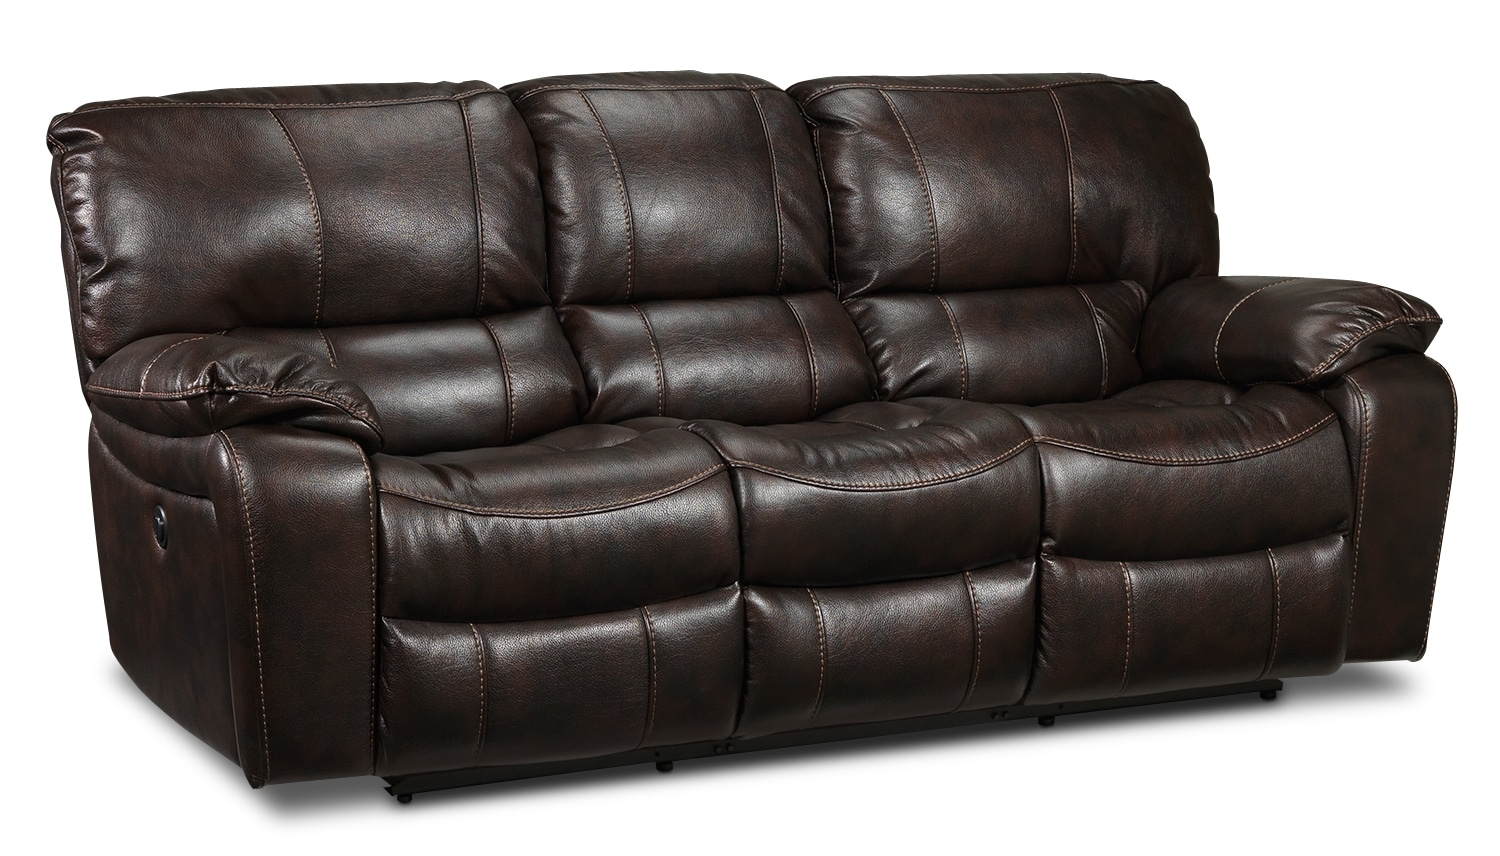 Living Room Furniture - Santorini Power Reclining Sofa - Walnut